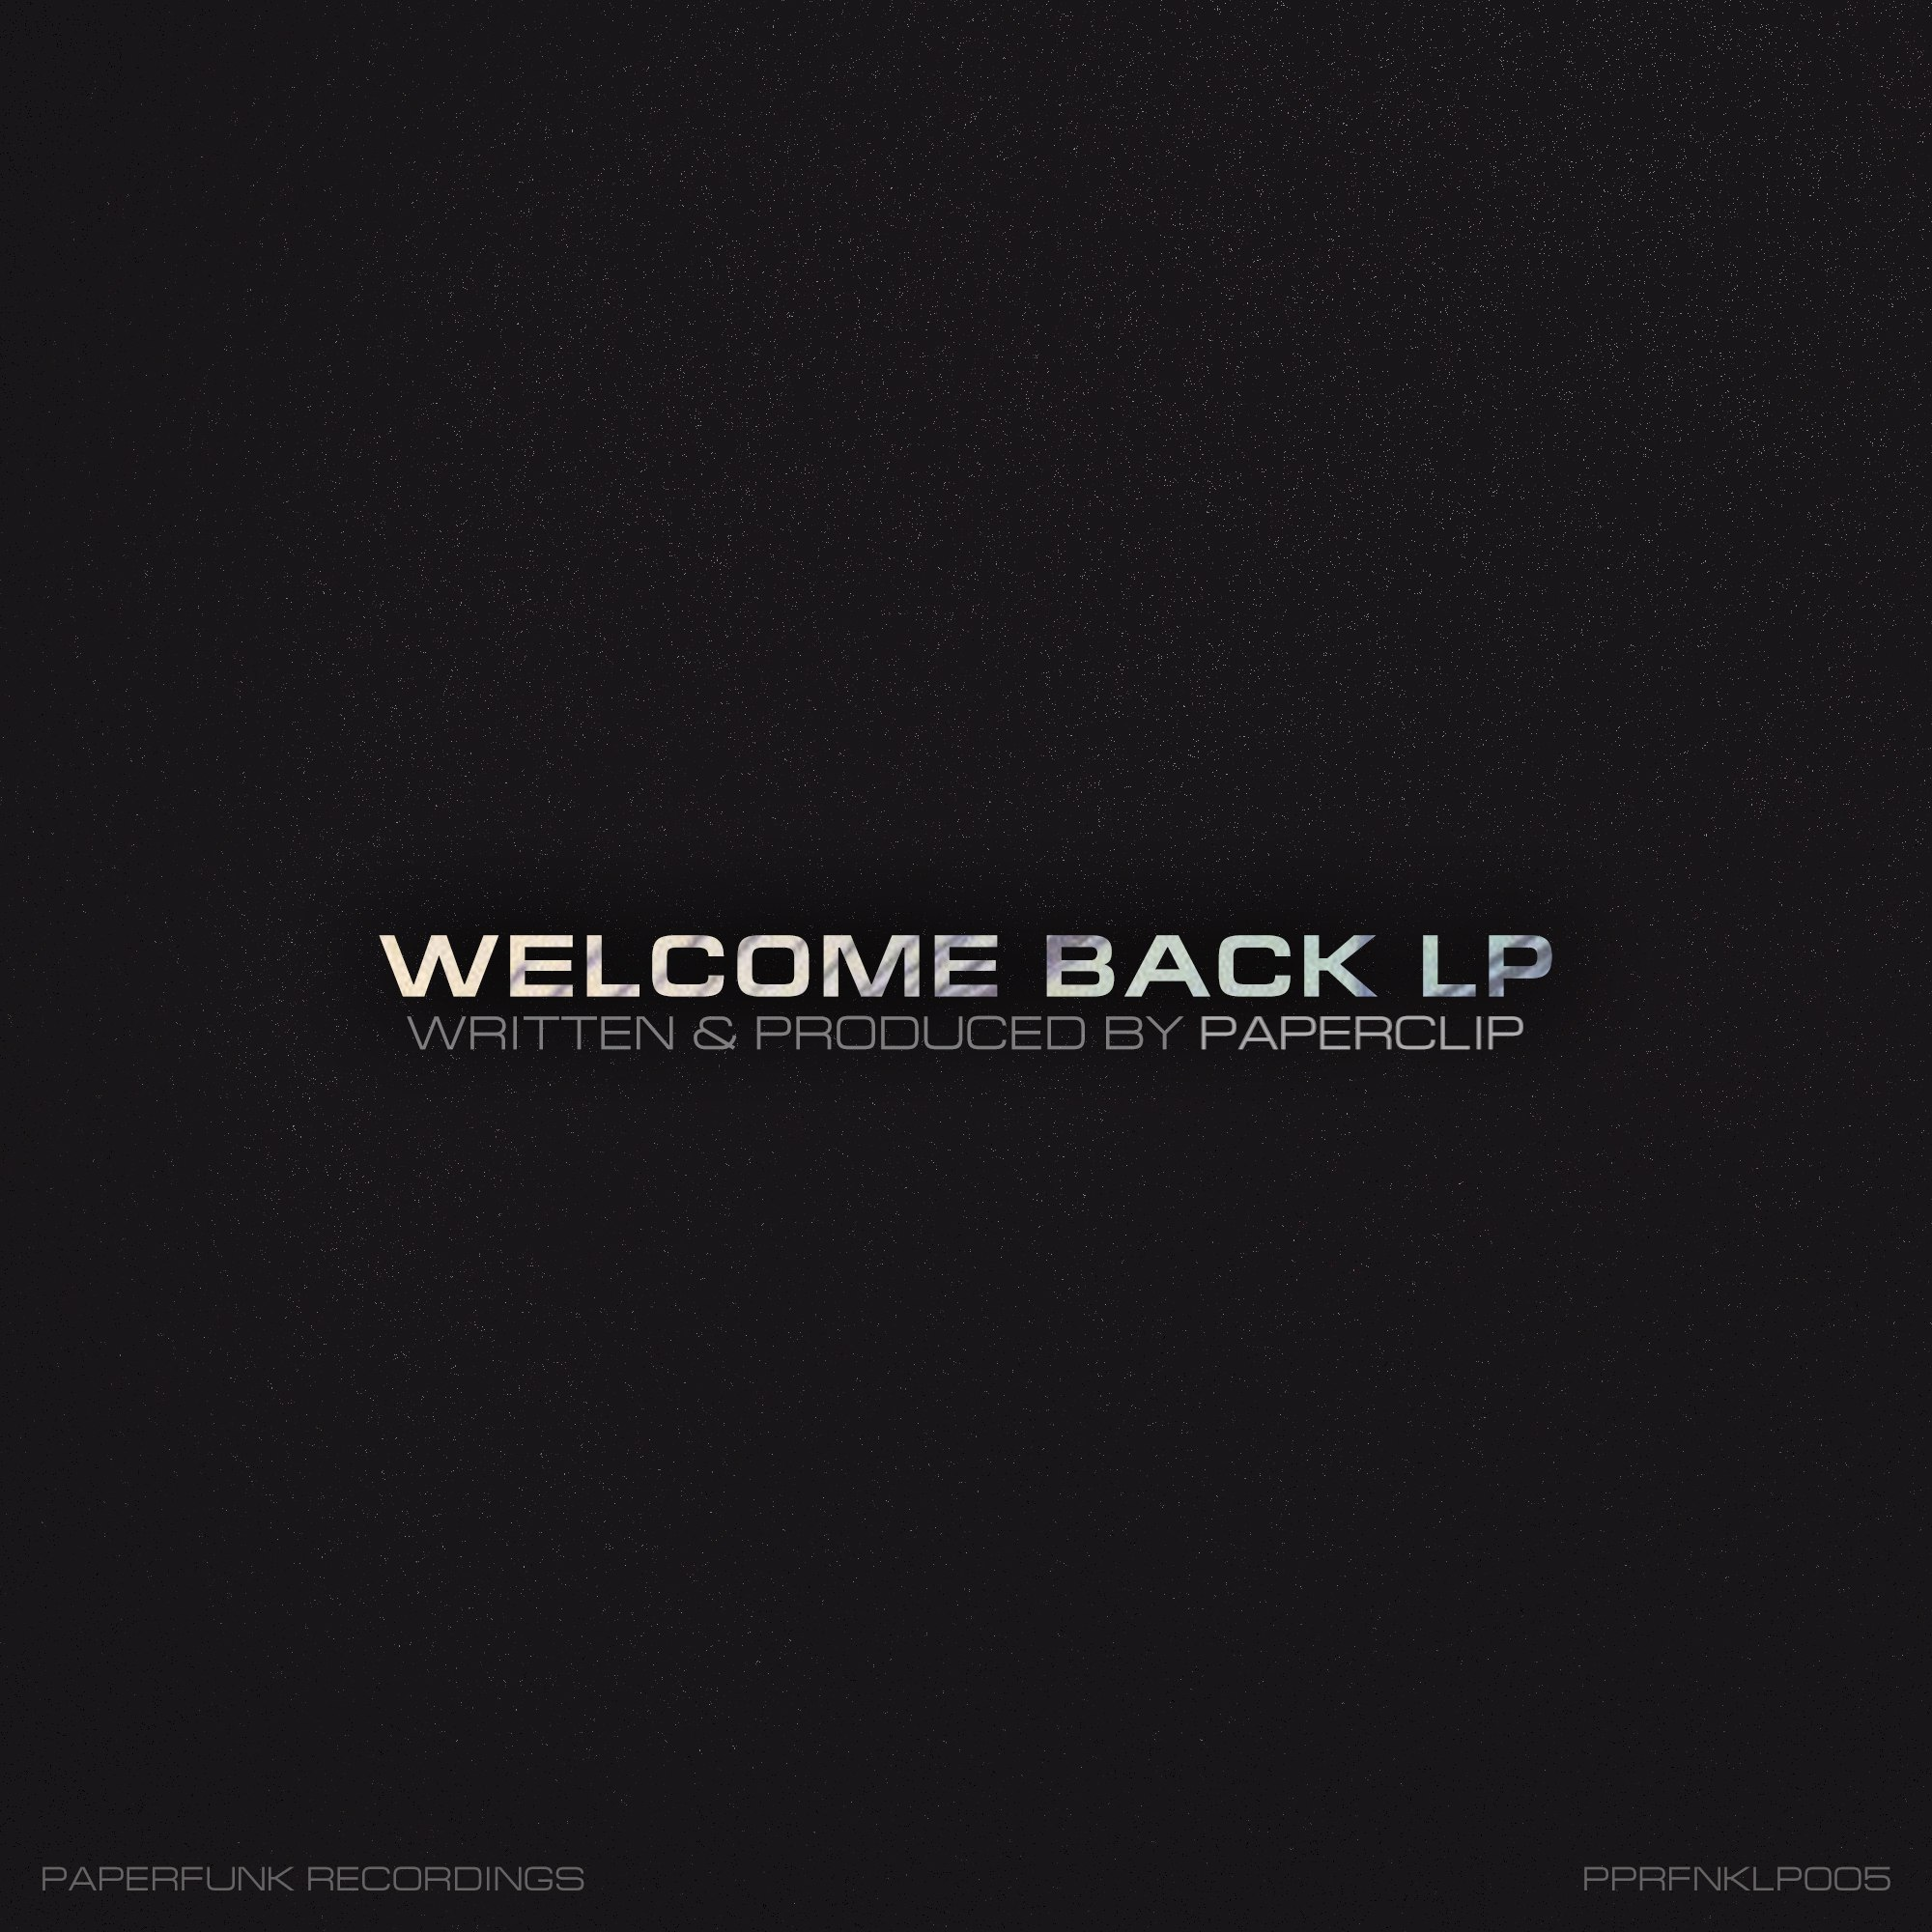 Paperclip - Welcome Back LP